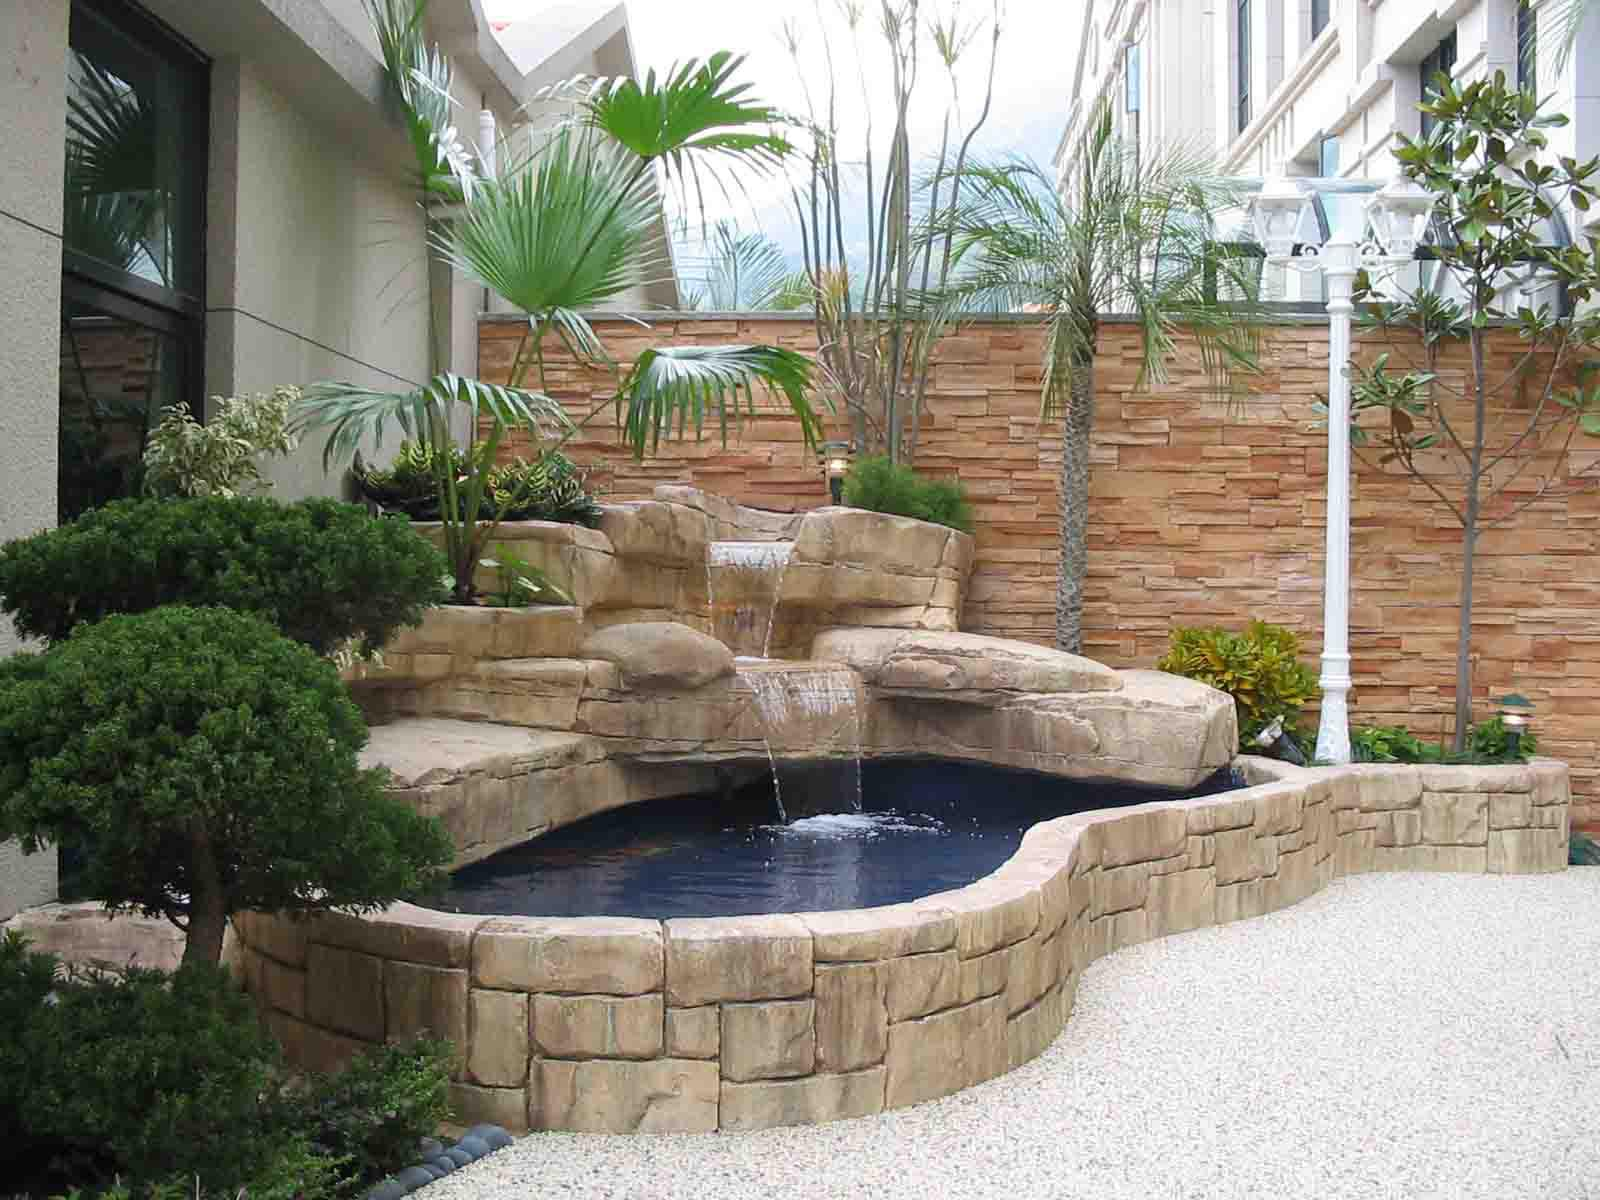 Fish pond garden design backyard design ideas for Small outside fish ponds